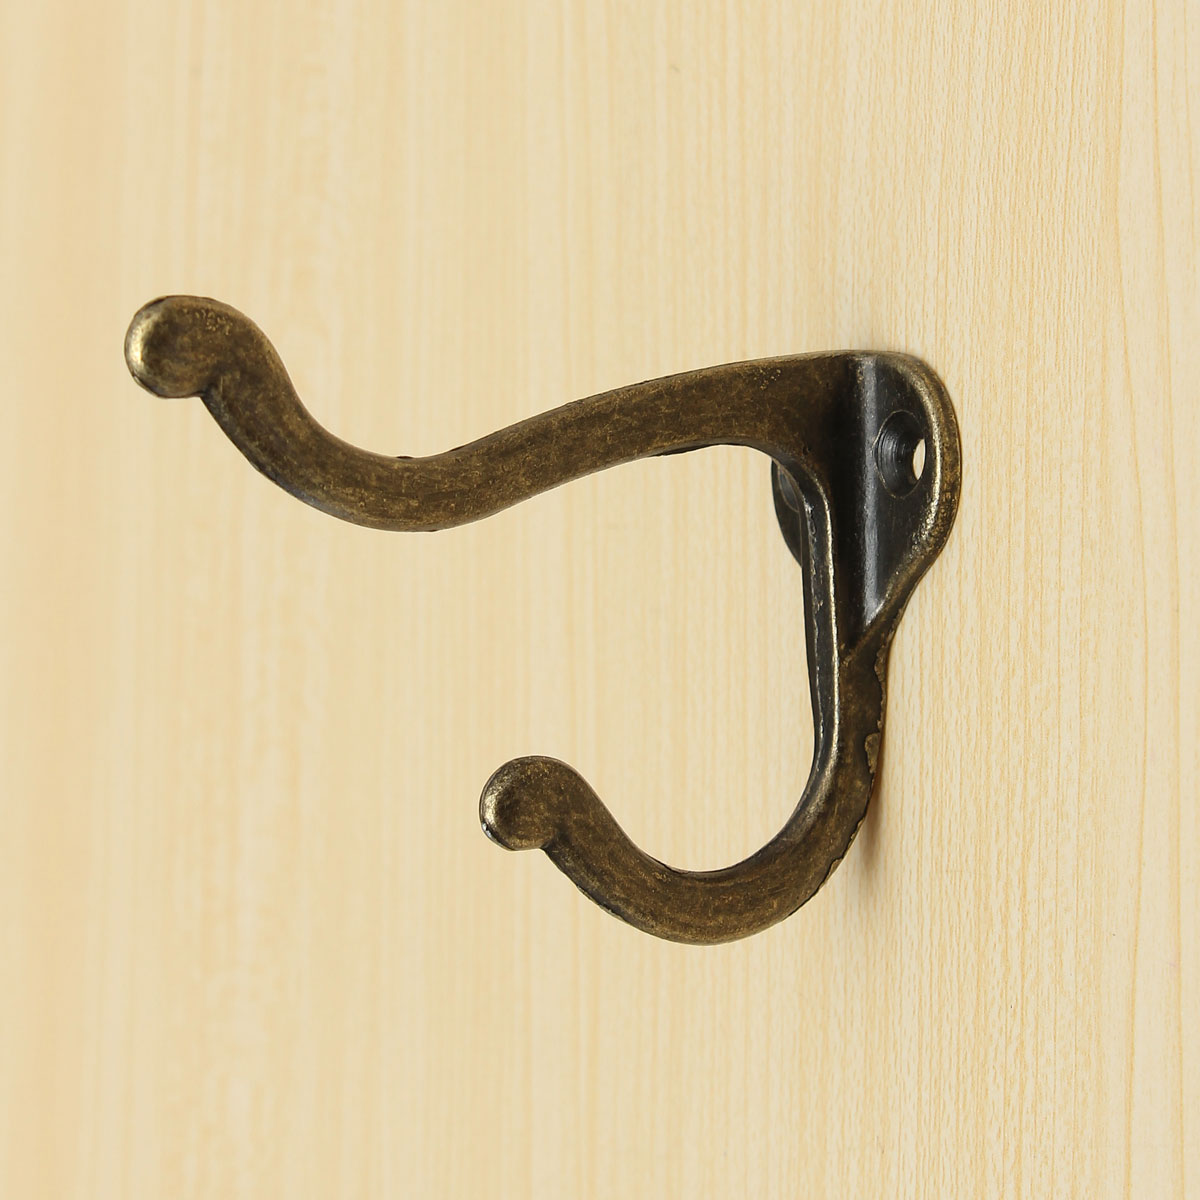 1Pcs Vintage Antique Style Hanger Bathroom Assistance Metal Hat Coat Clothes Towel Robe Bath Wall Mounted Door Hooks 53X29X75mm